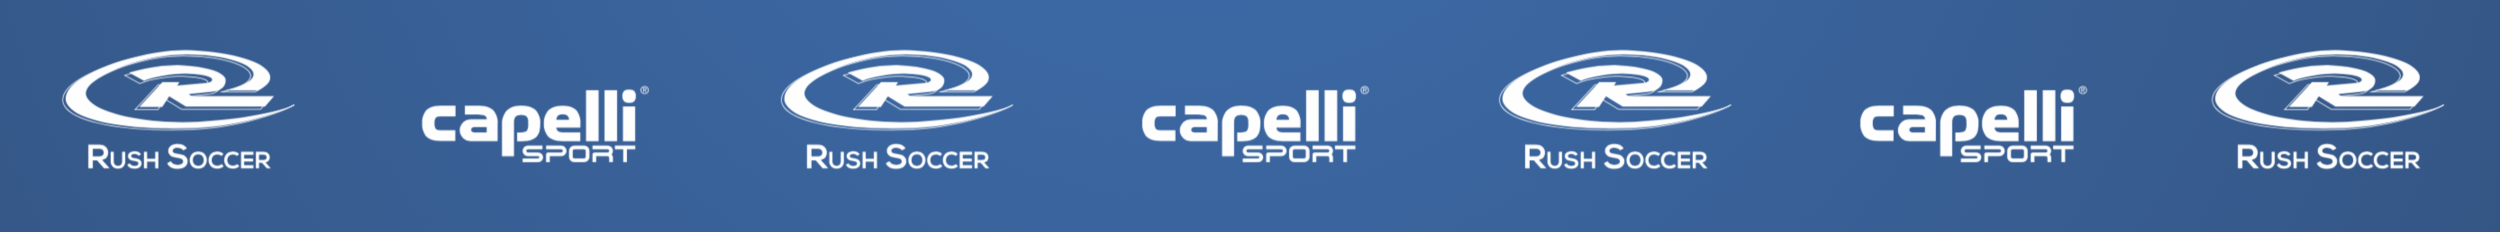 Rush is exited to launch its new partnership with Capelli Sports commencing in the 2019/20 season.